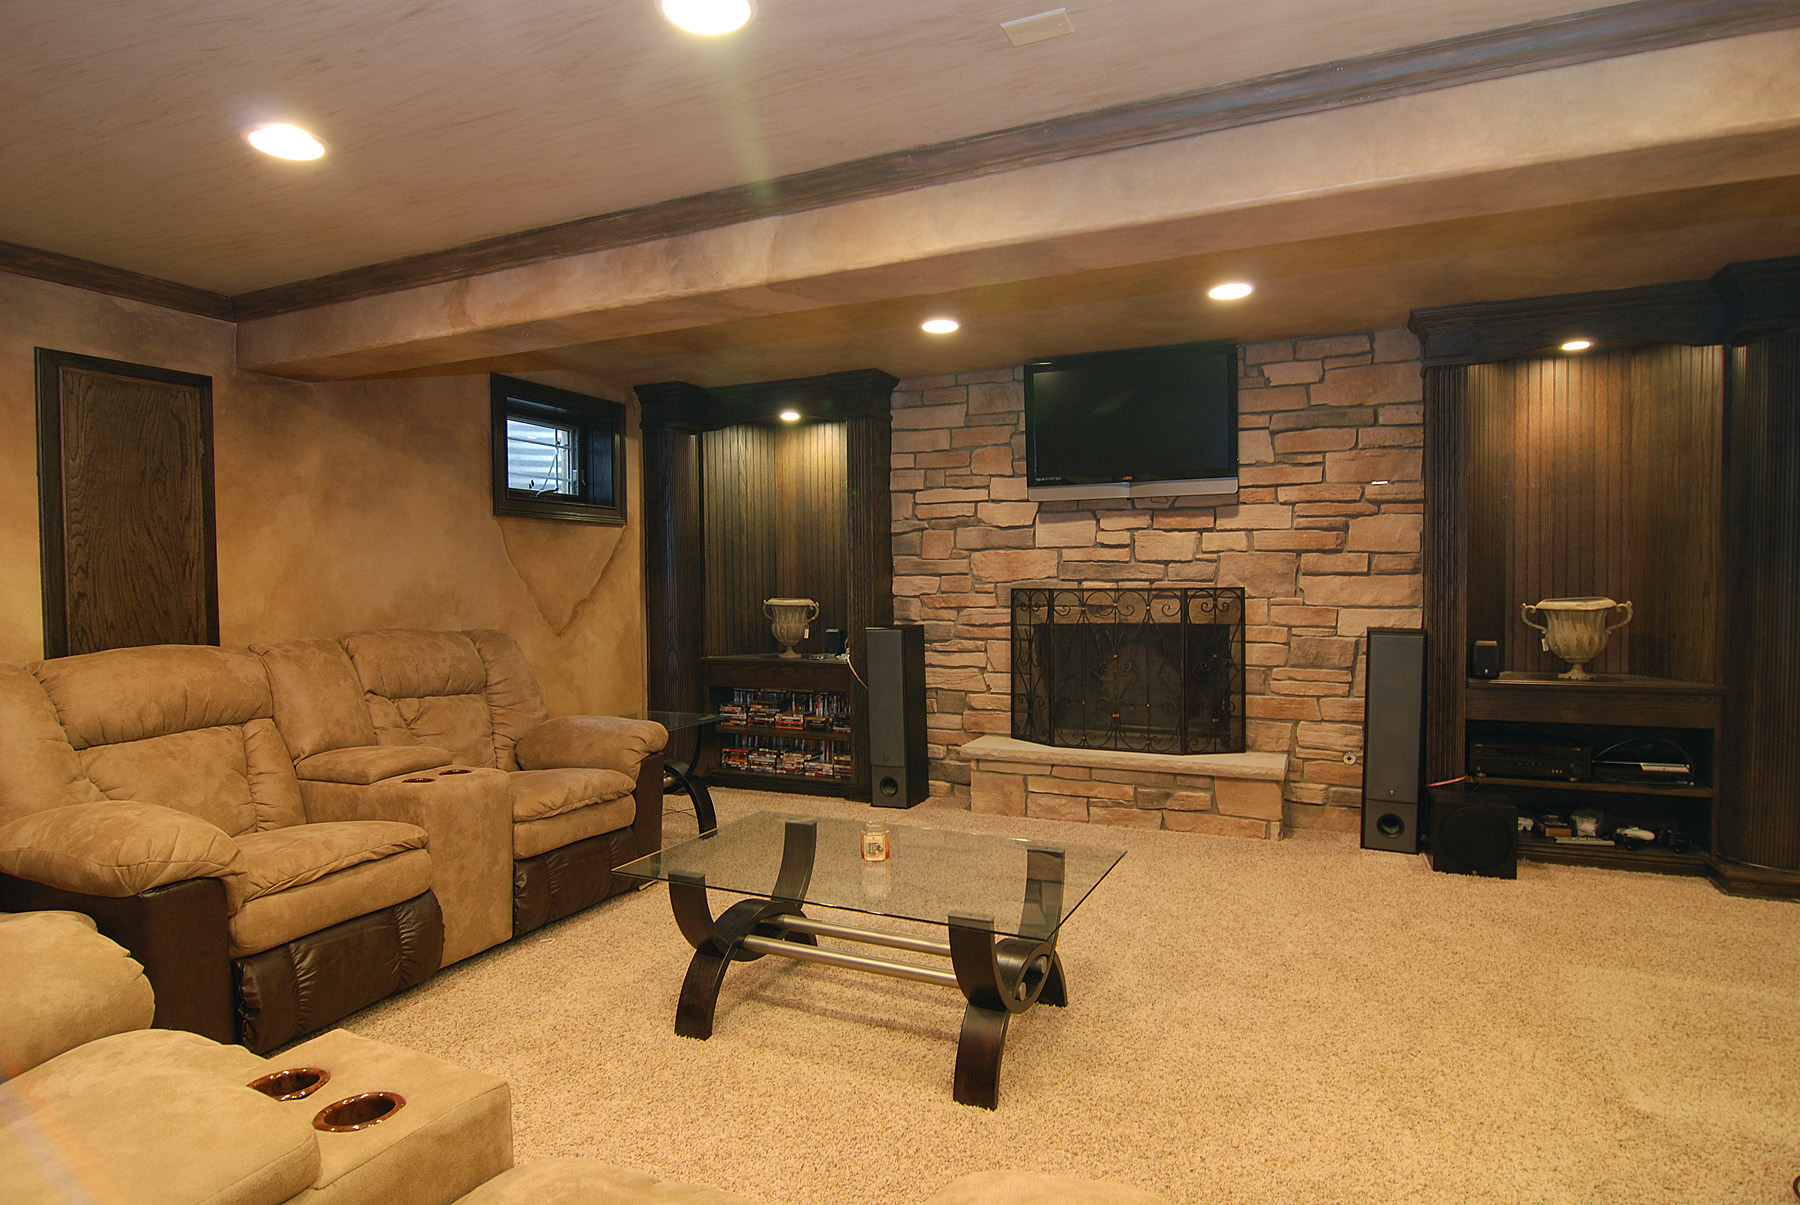 Chicago basement remodeling basement remodel chicago basement finishing homewerks - Basements designs ...